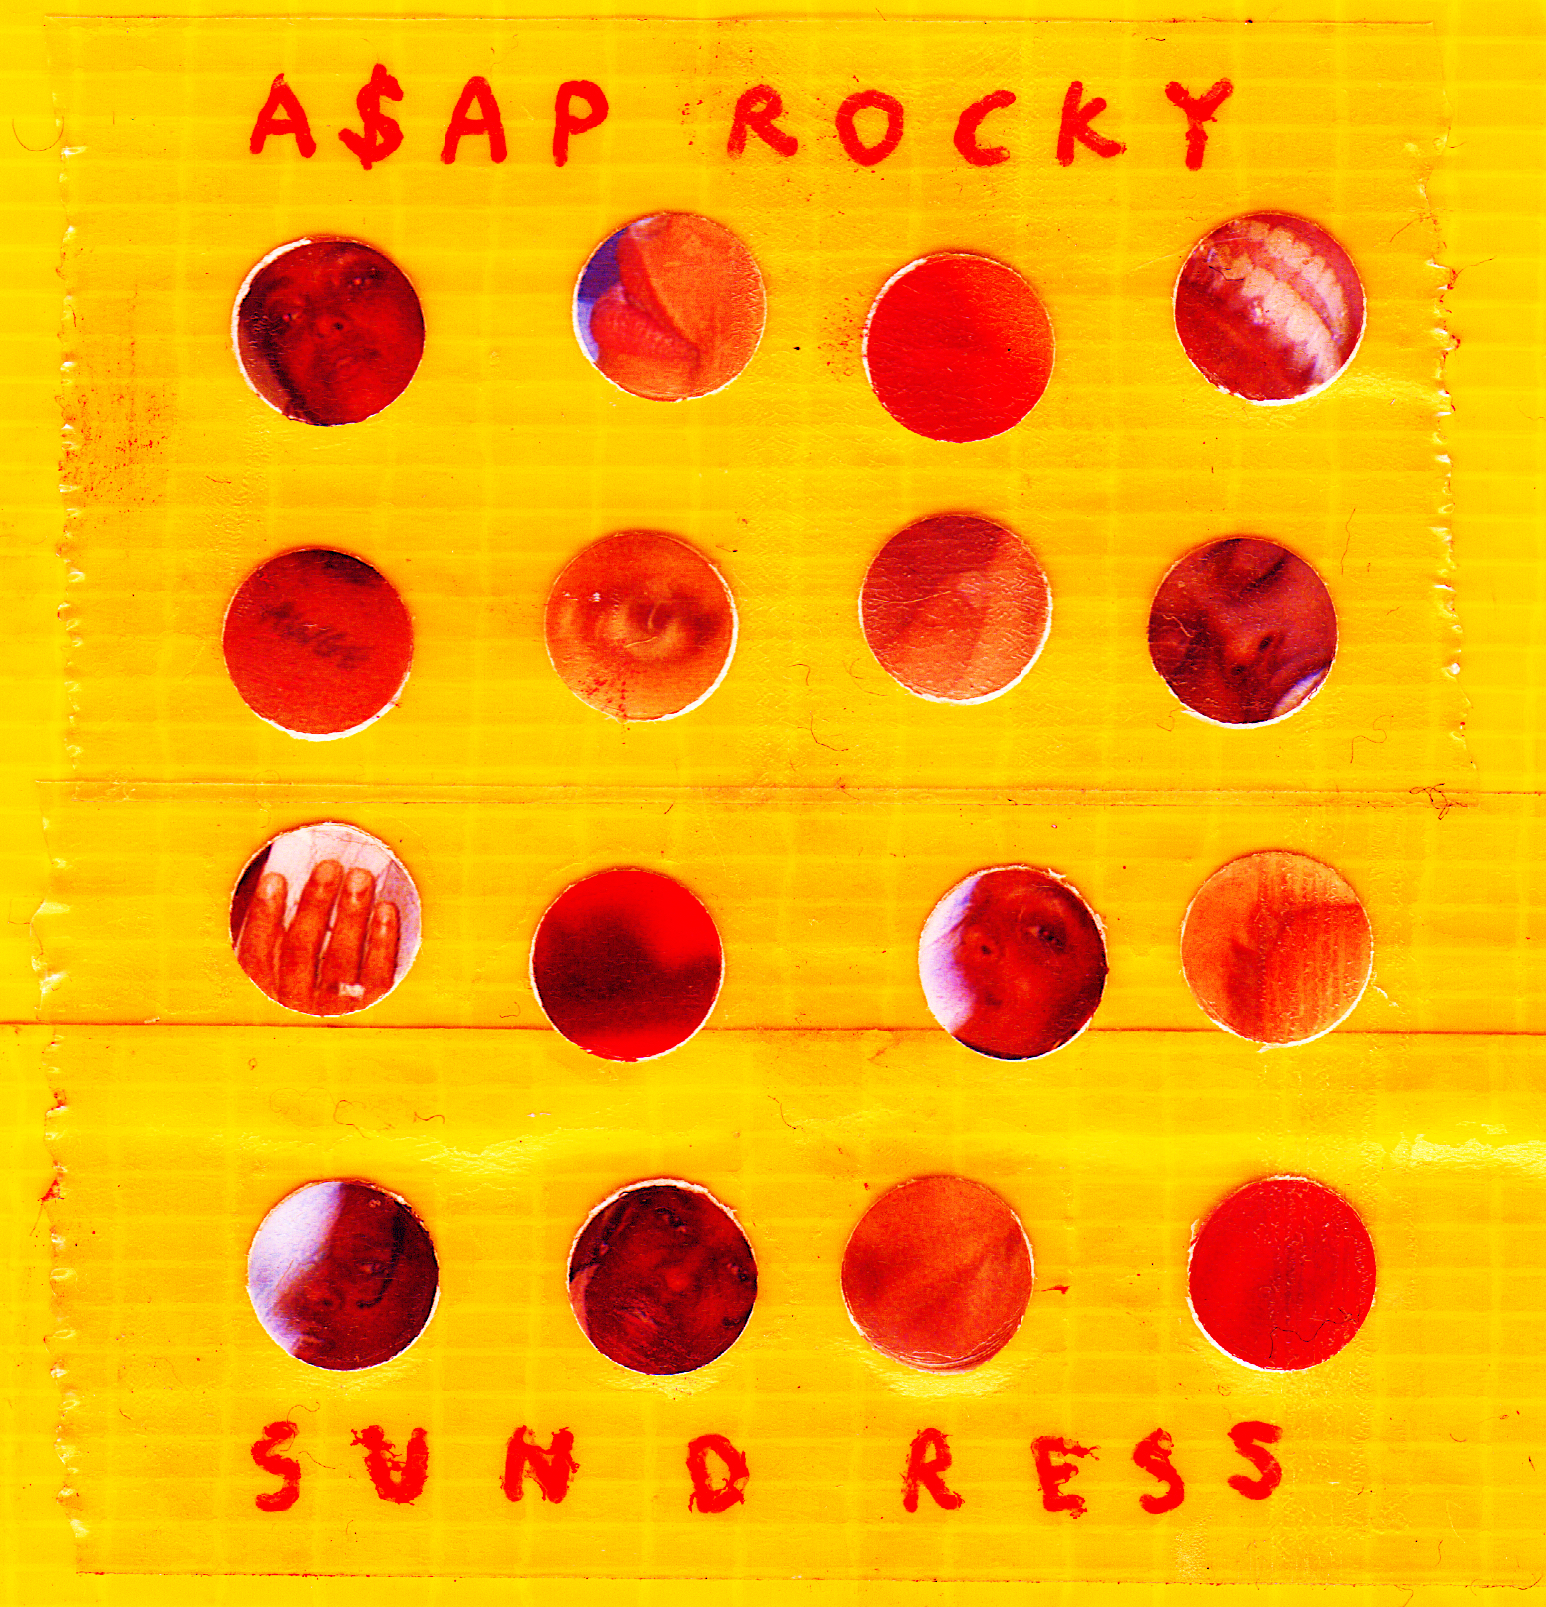 asap sundress art 2.jpg